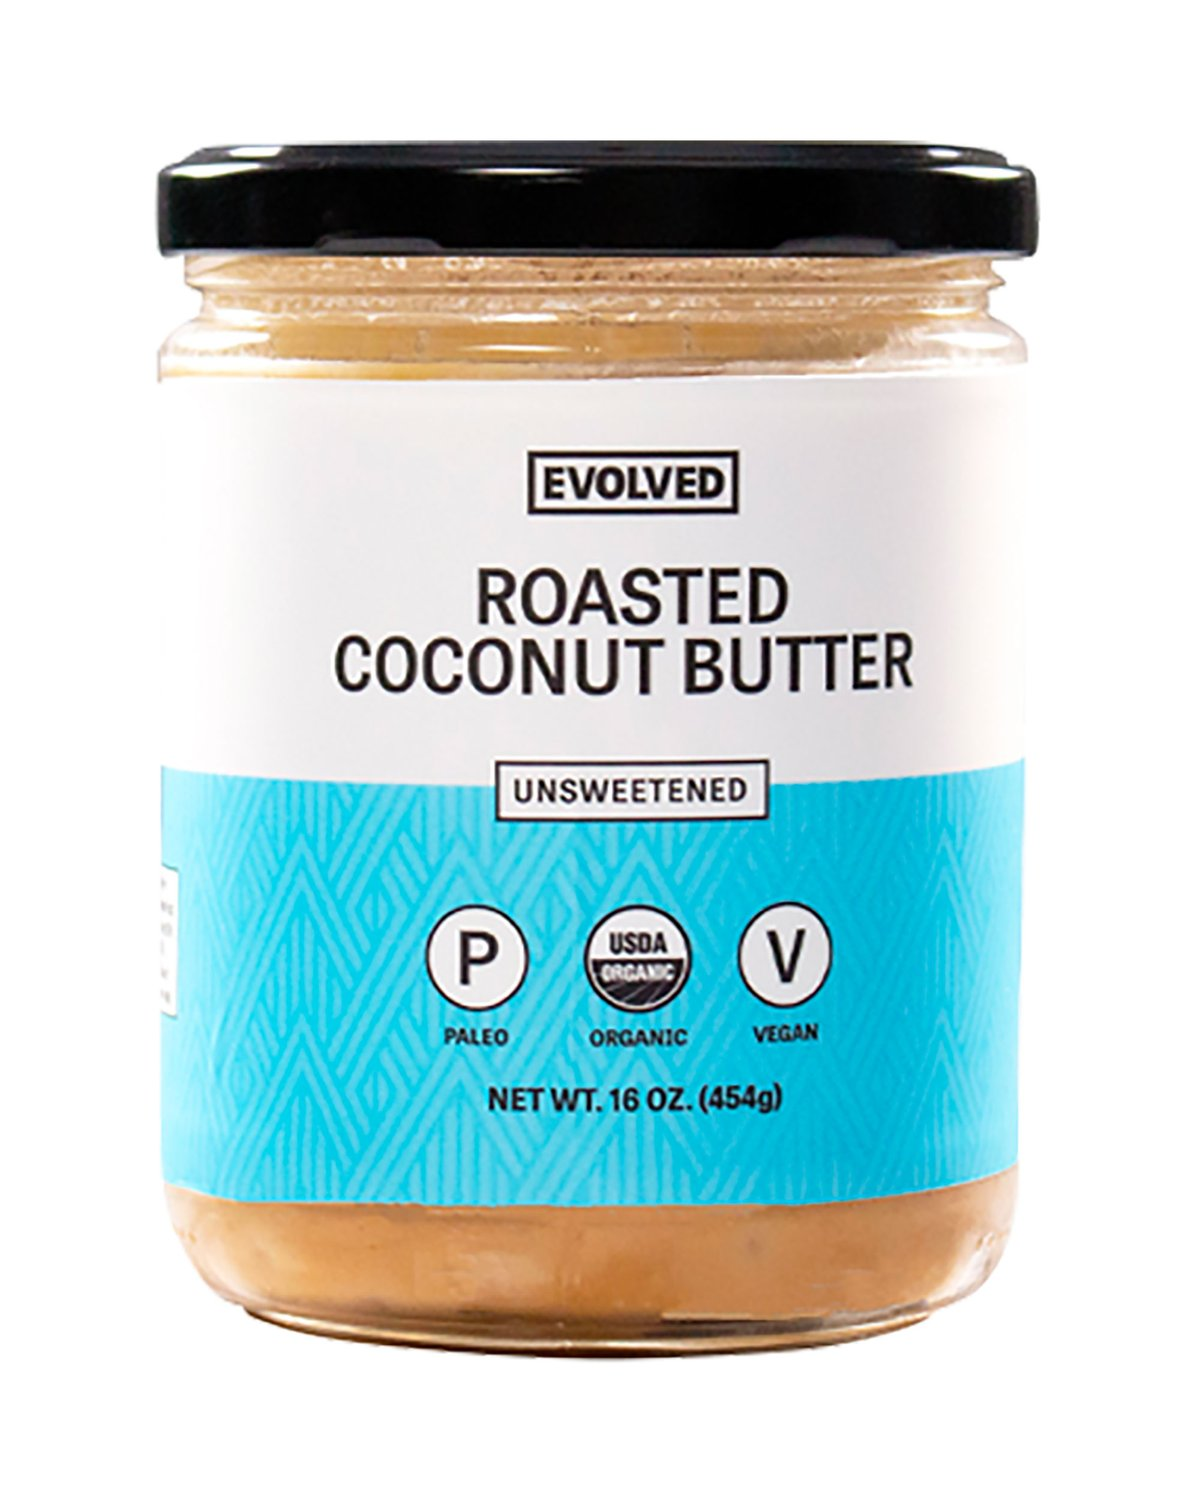 Eating Evolved Toasted Coconut Butter